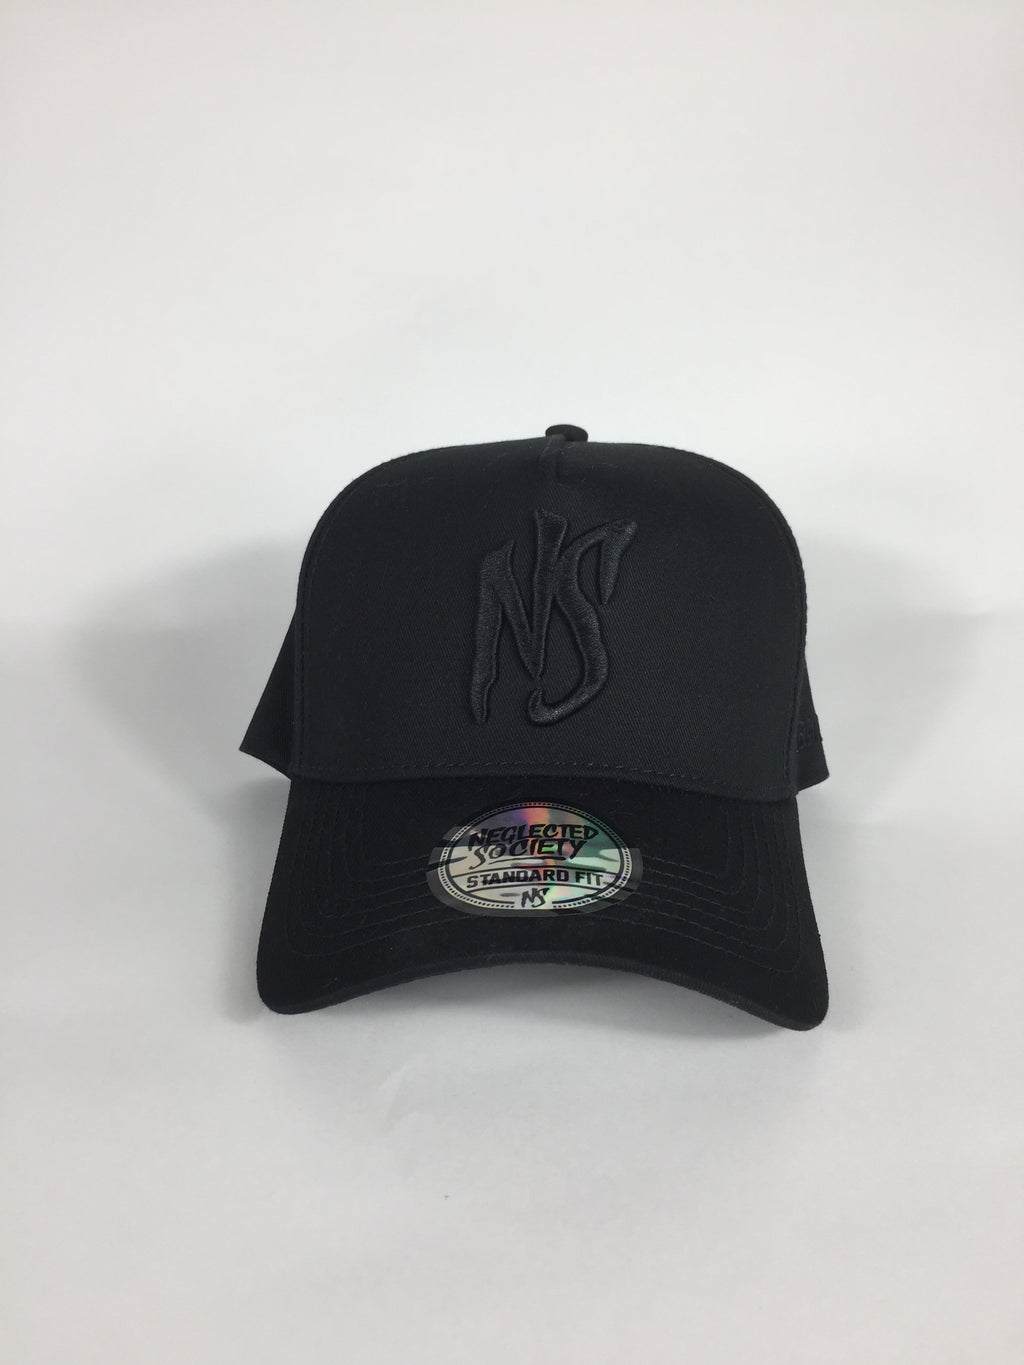 NS All Black Aframe Standard Fit Snapback